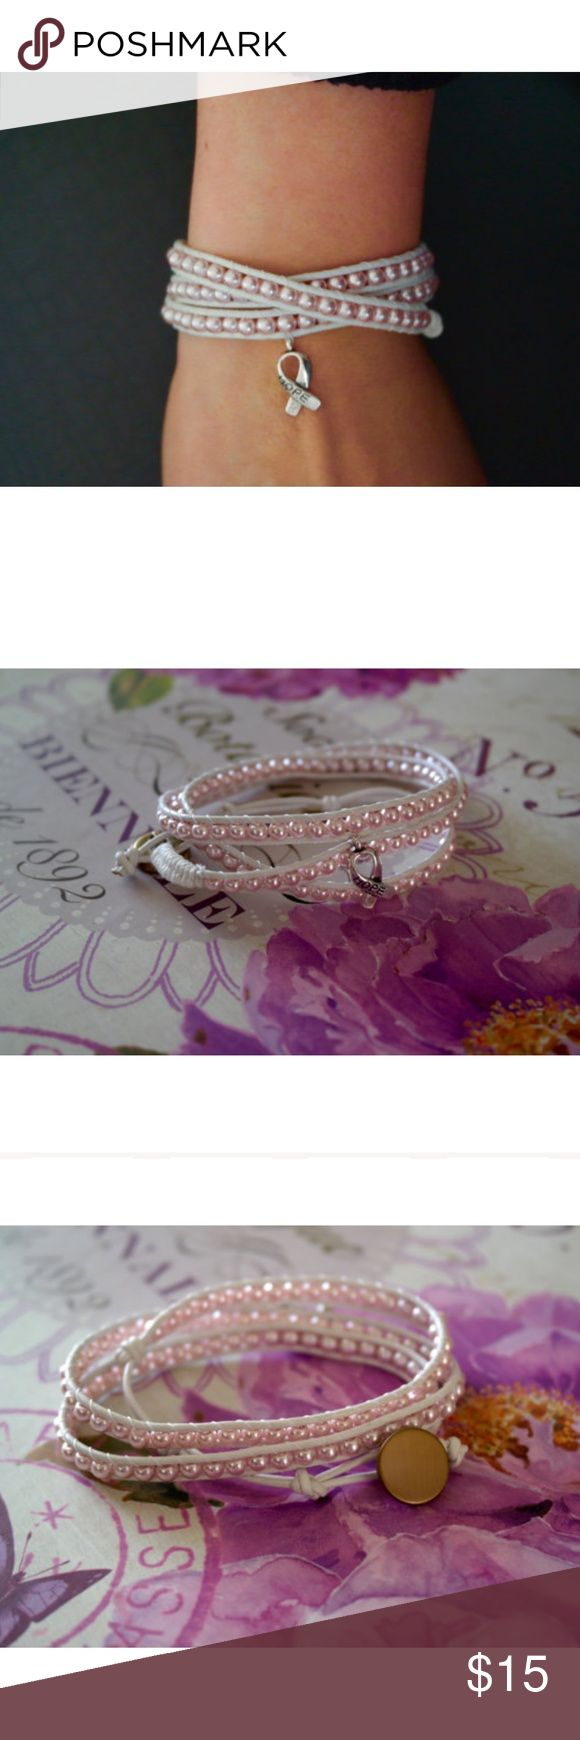 """NWOT. Breast cancer awareness triple wrap bracelet Breast cancer awareness wrap bracelet.  Light pink pearlescent beads with a hope charm and a gold antique button.  This is a triple wrap bracelet That has 3 holes for sizing.   Total length: 24"""" Jewelry Bracelets"""